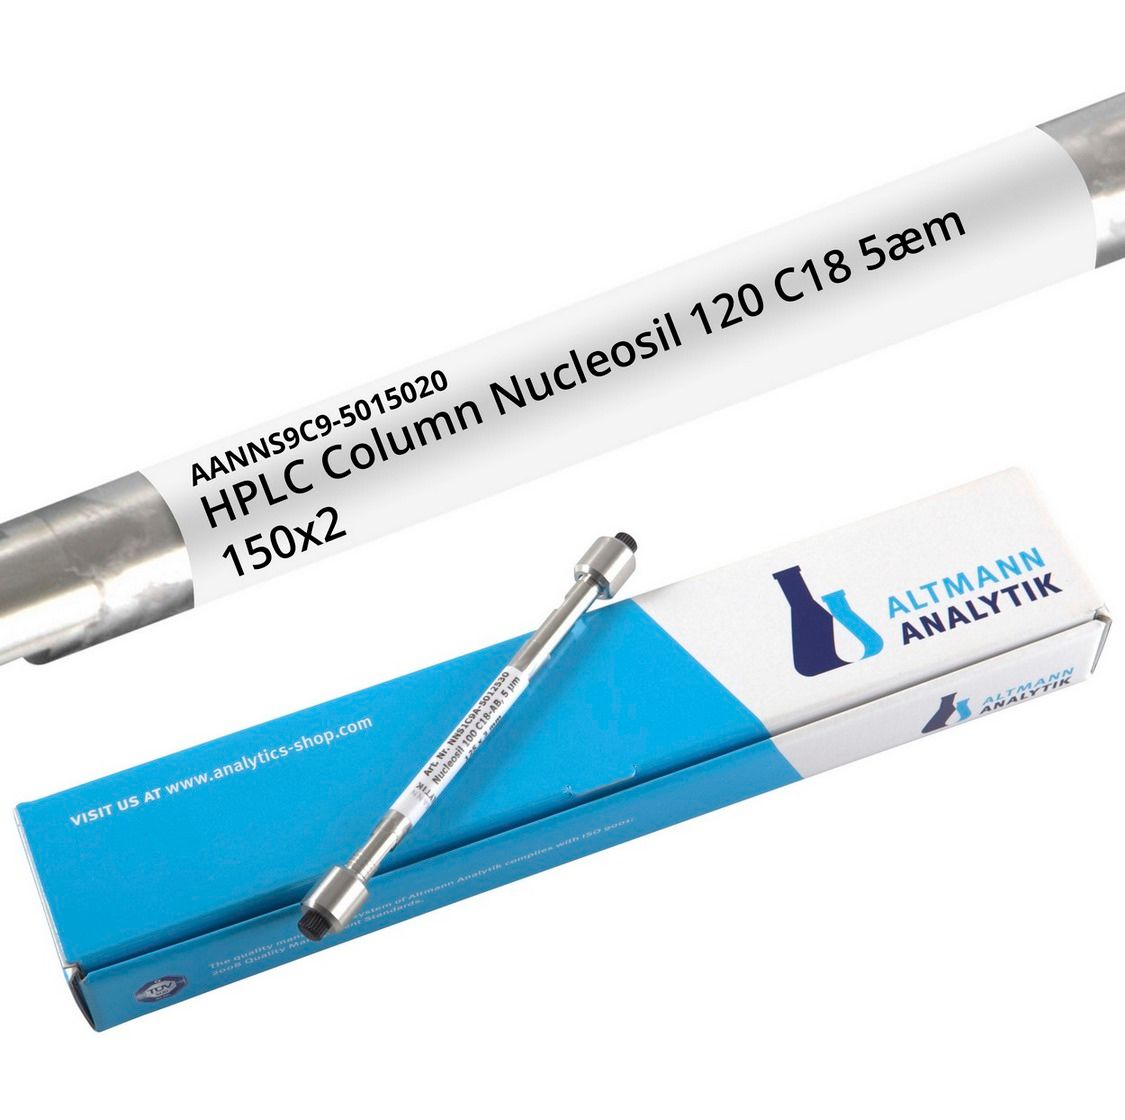 HPLC Column Nucleosil 120Å C18 5µm 150x2mm